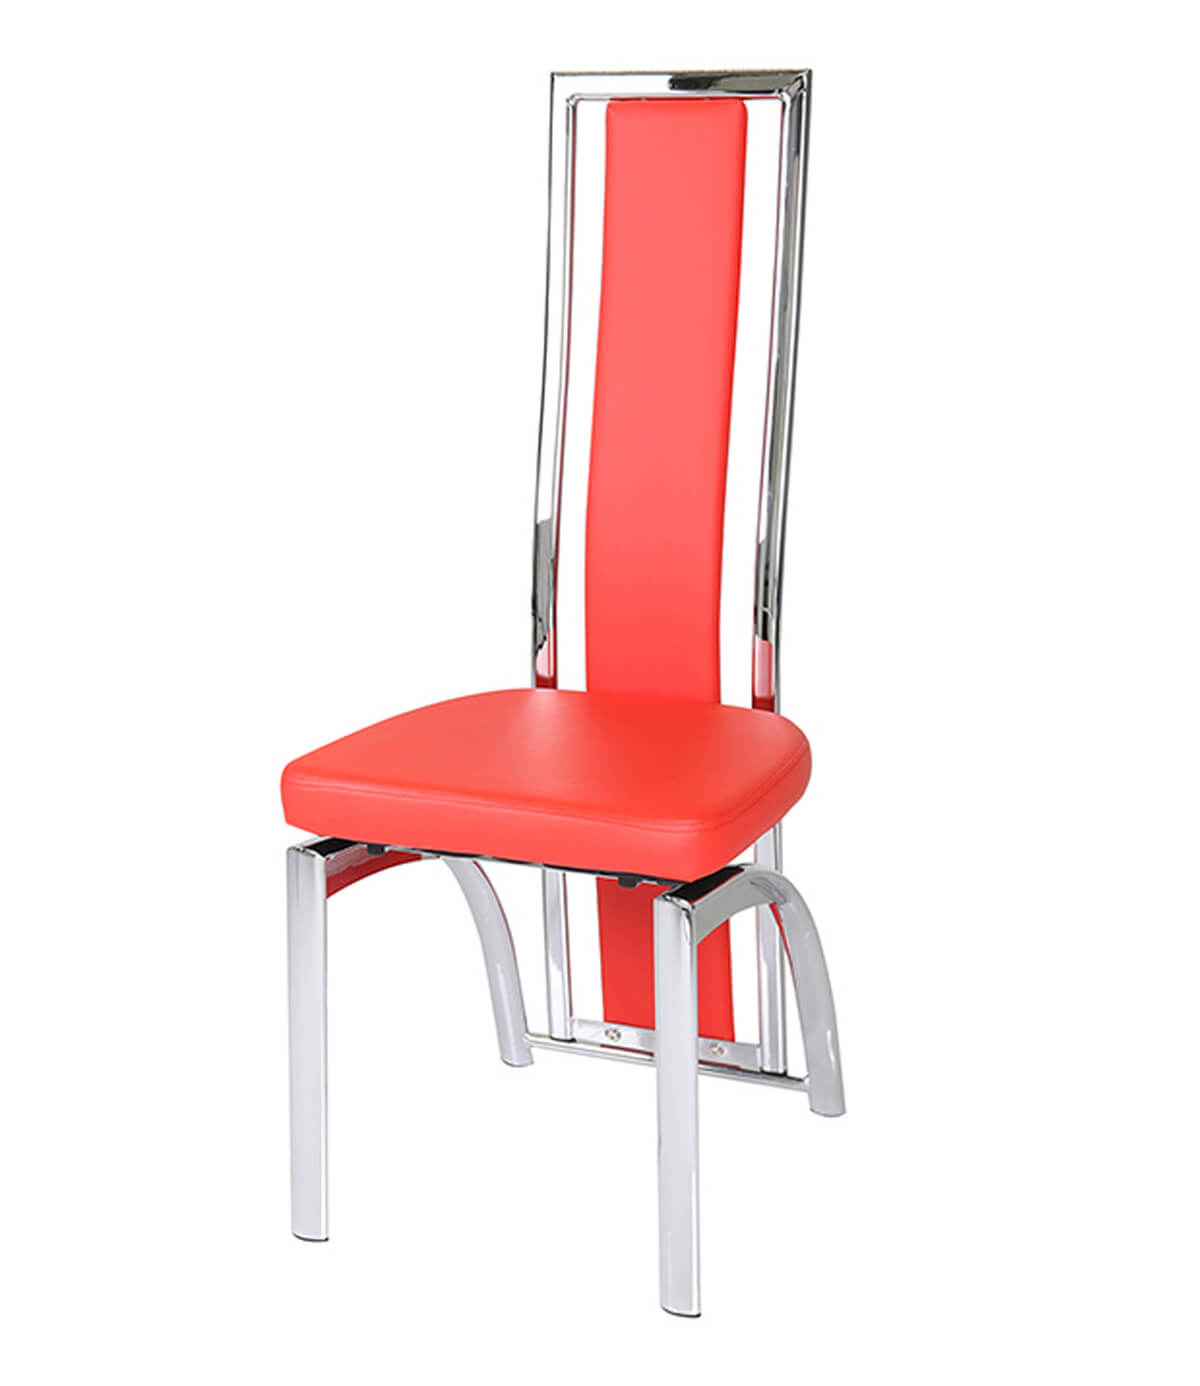 chrome dining chairs uk chair covers in bulk manchester furniture supplies